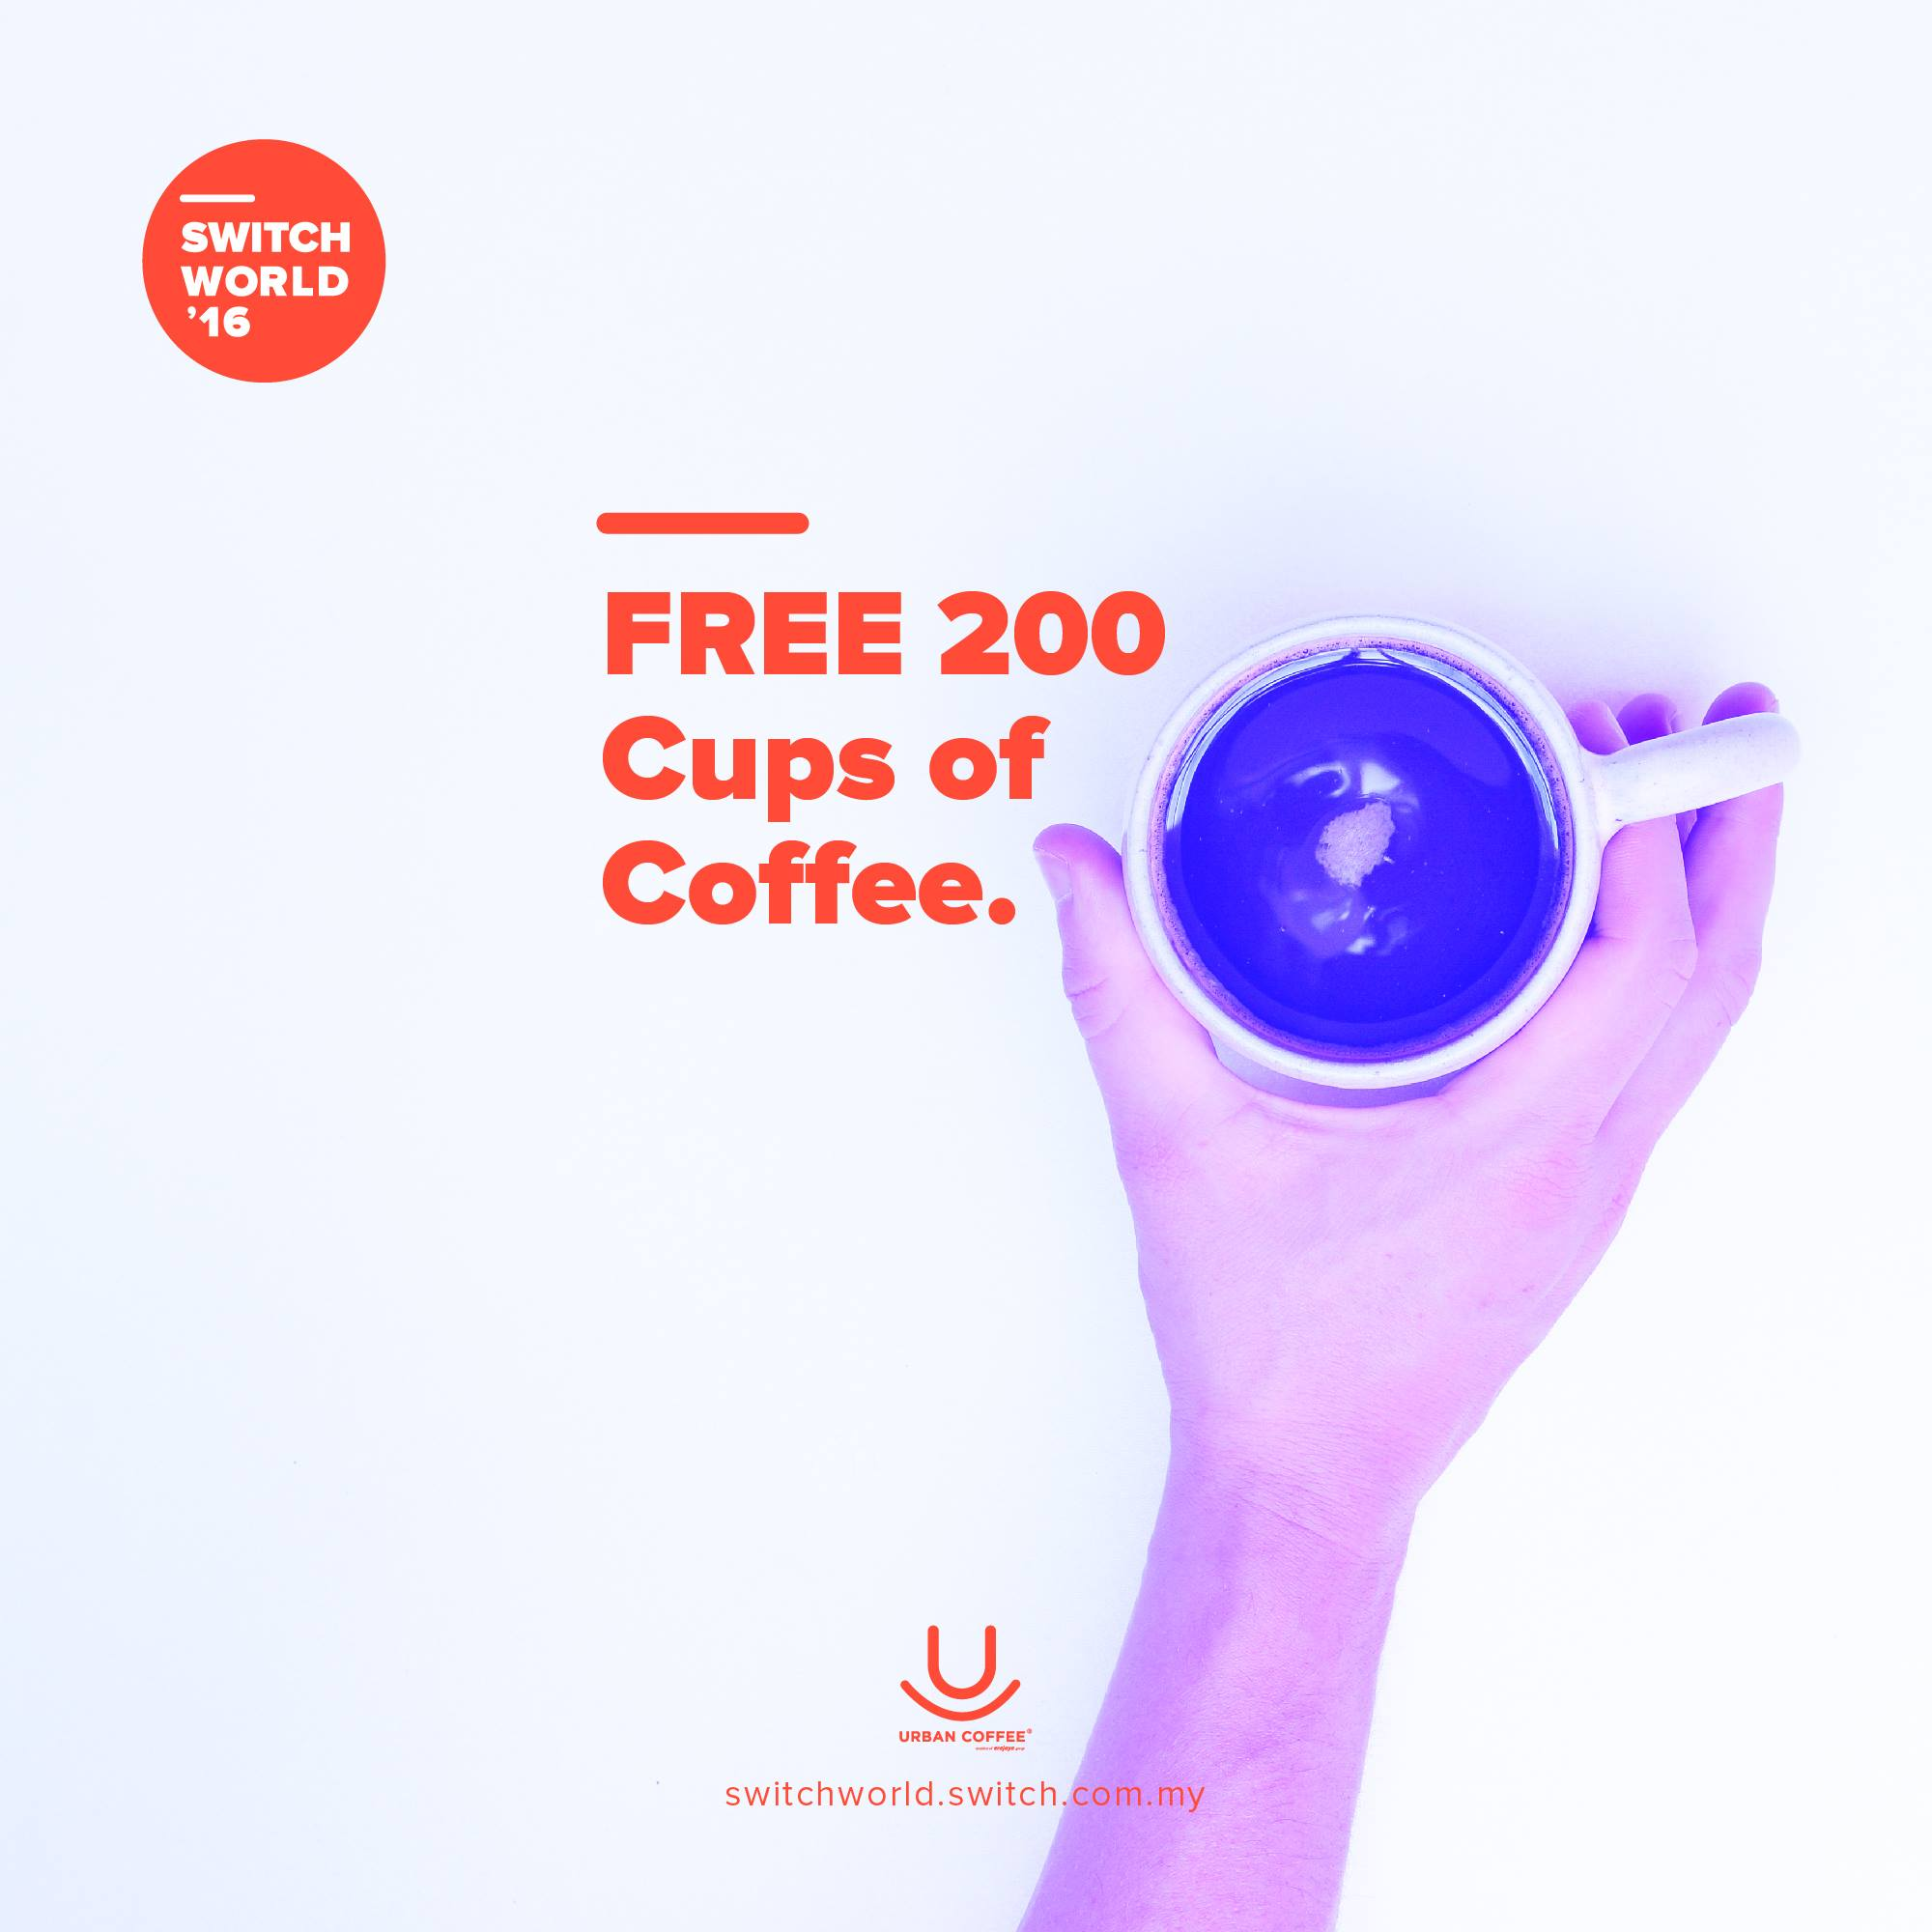 FREECOFFEEGiveaway SwitchWorld